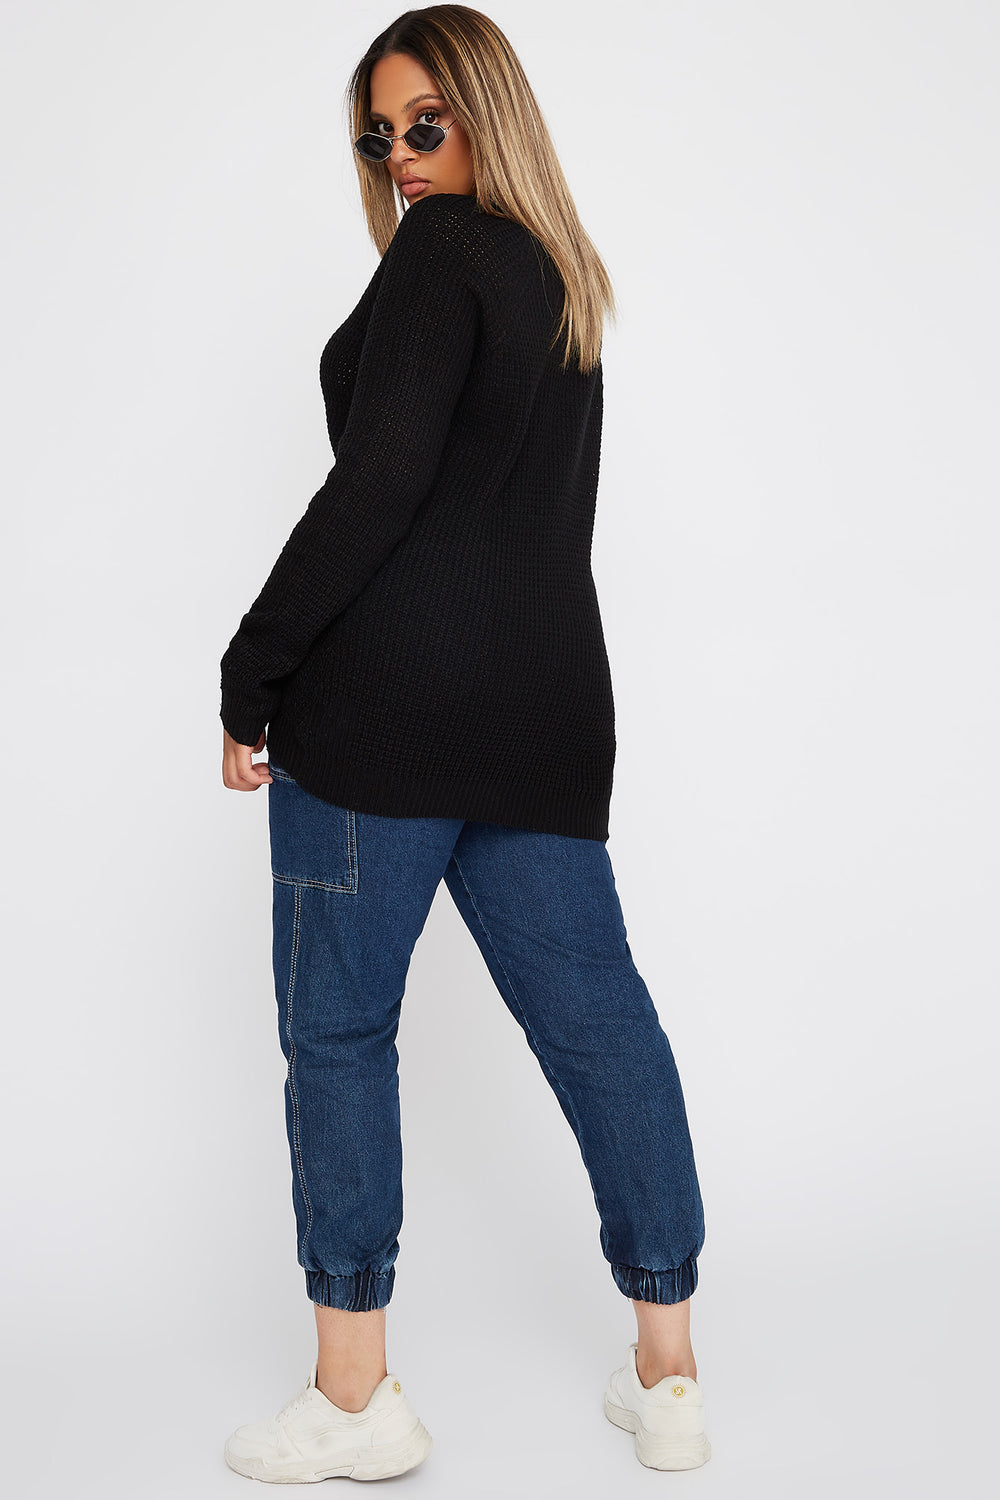 Plus Size Crochet Crew Neck Longline Sweater Black